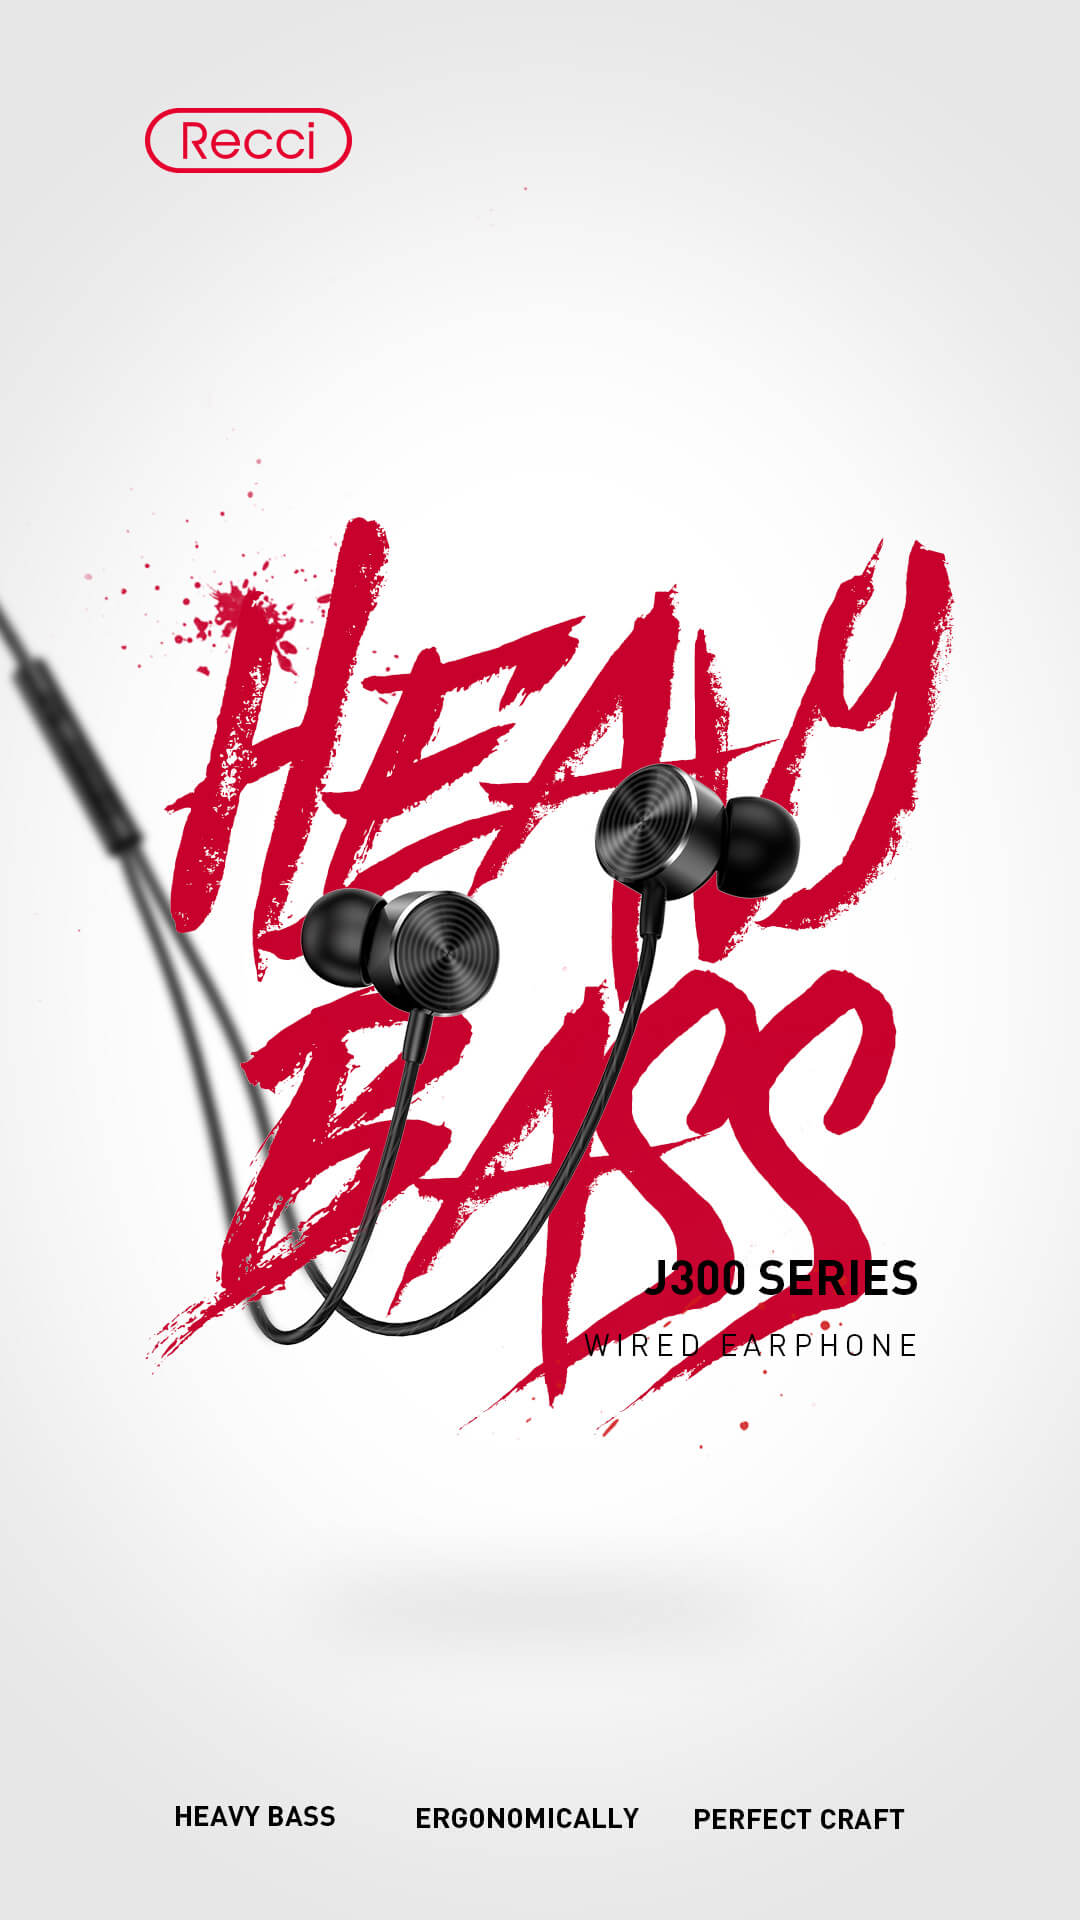 J300 Heavy Bass Earphone Recci